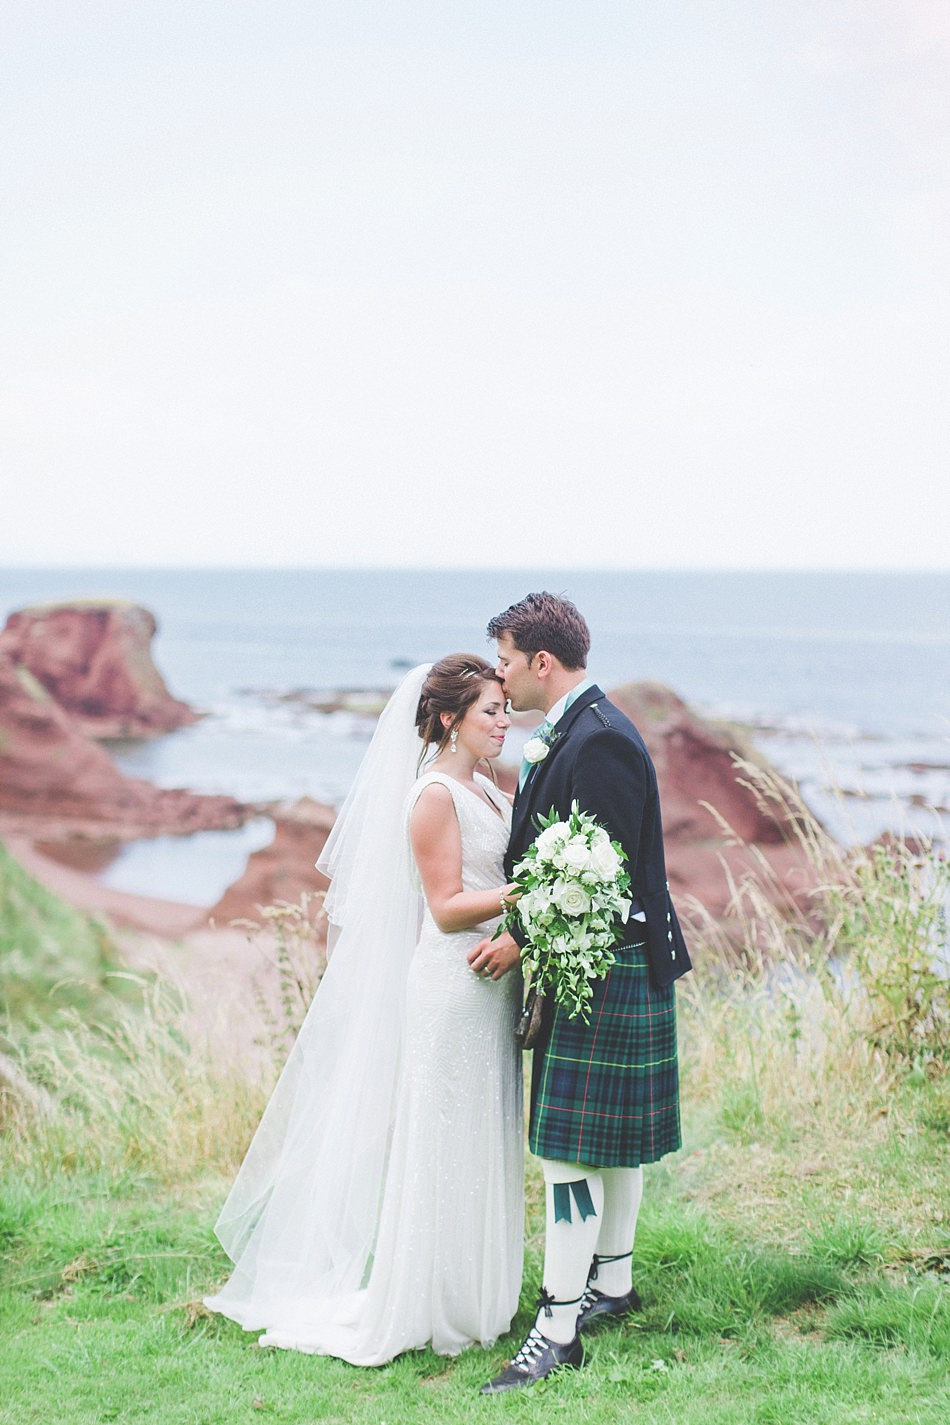 natural fine art wedding photographers scotland 9-1.jpg